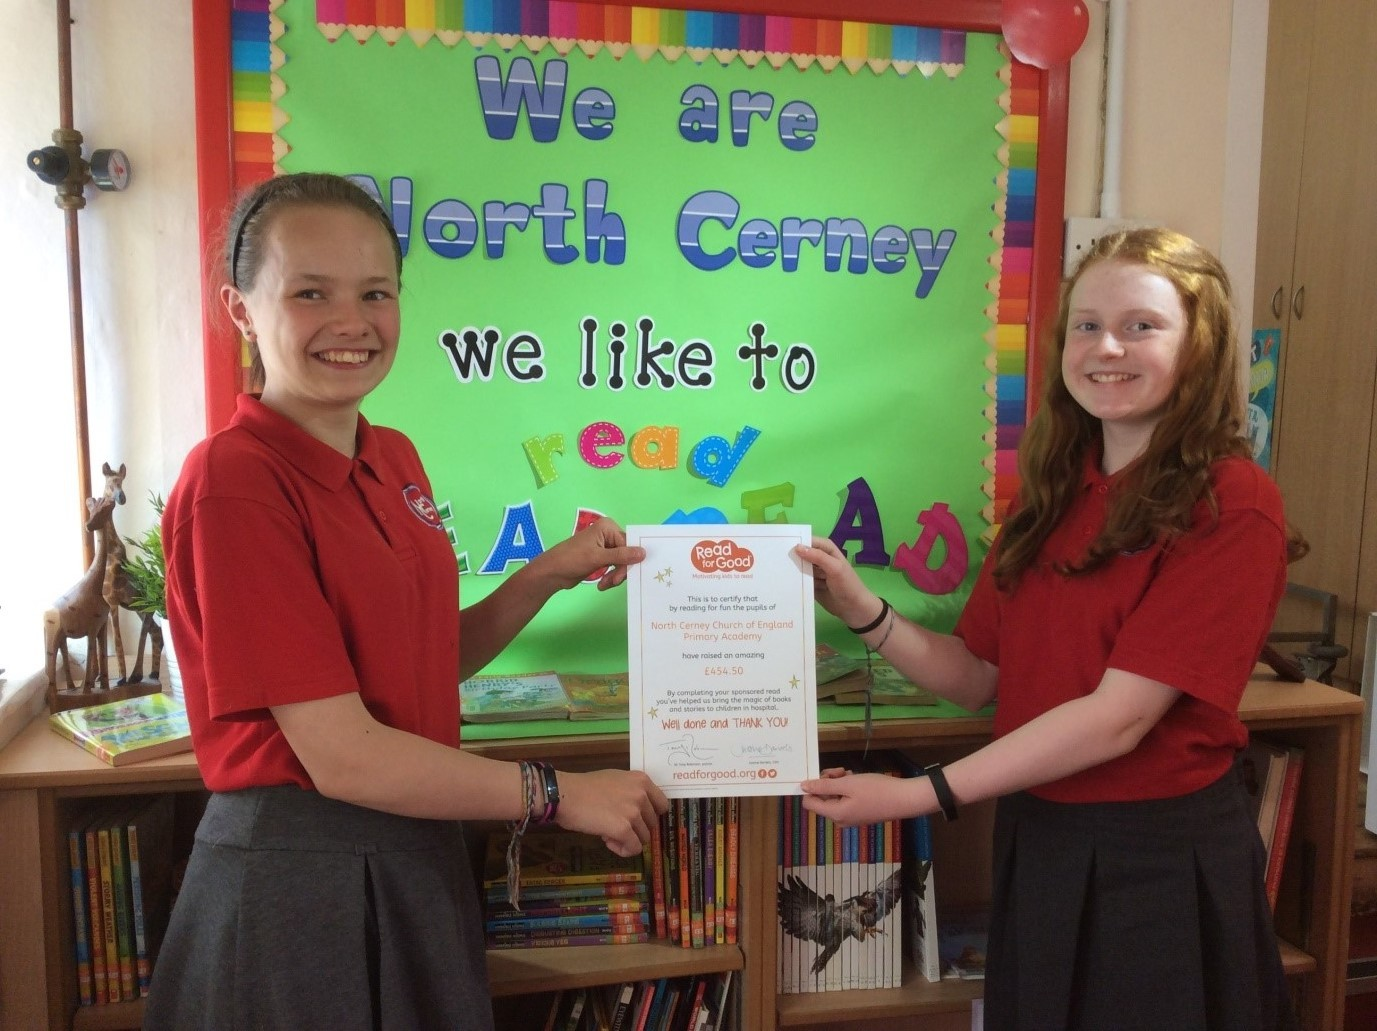 Year 6 pupils Kay Townsend and Amber Forde shared the idea to the school